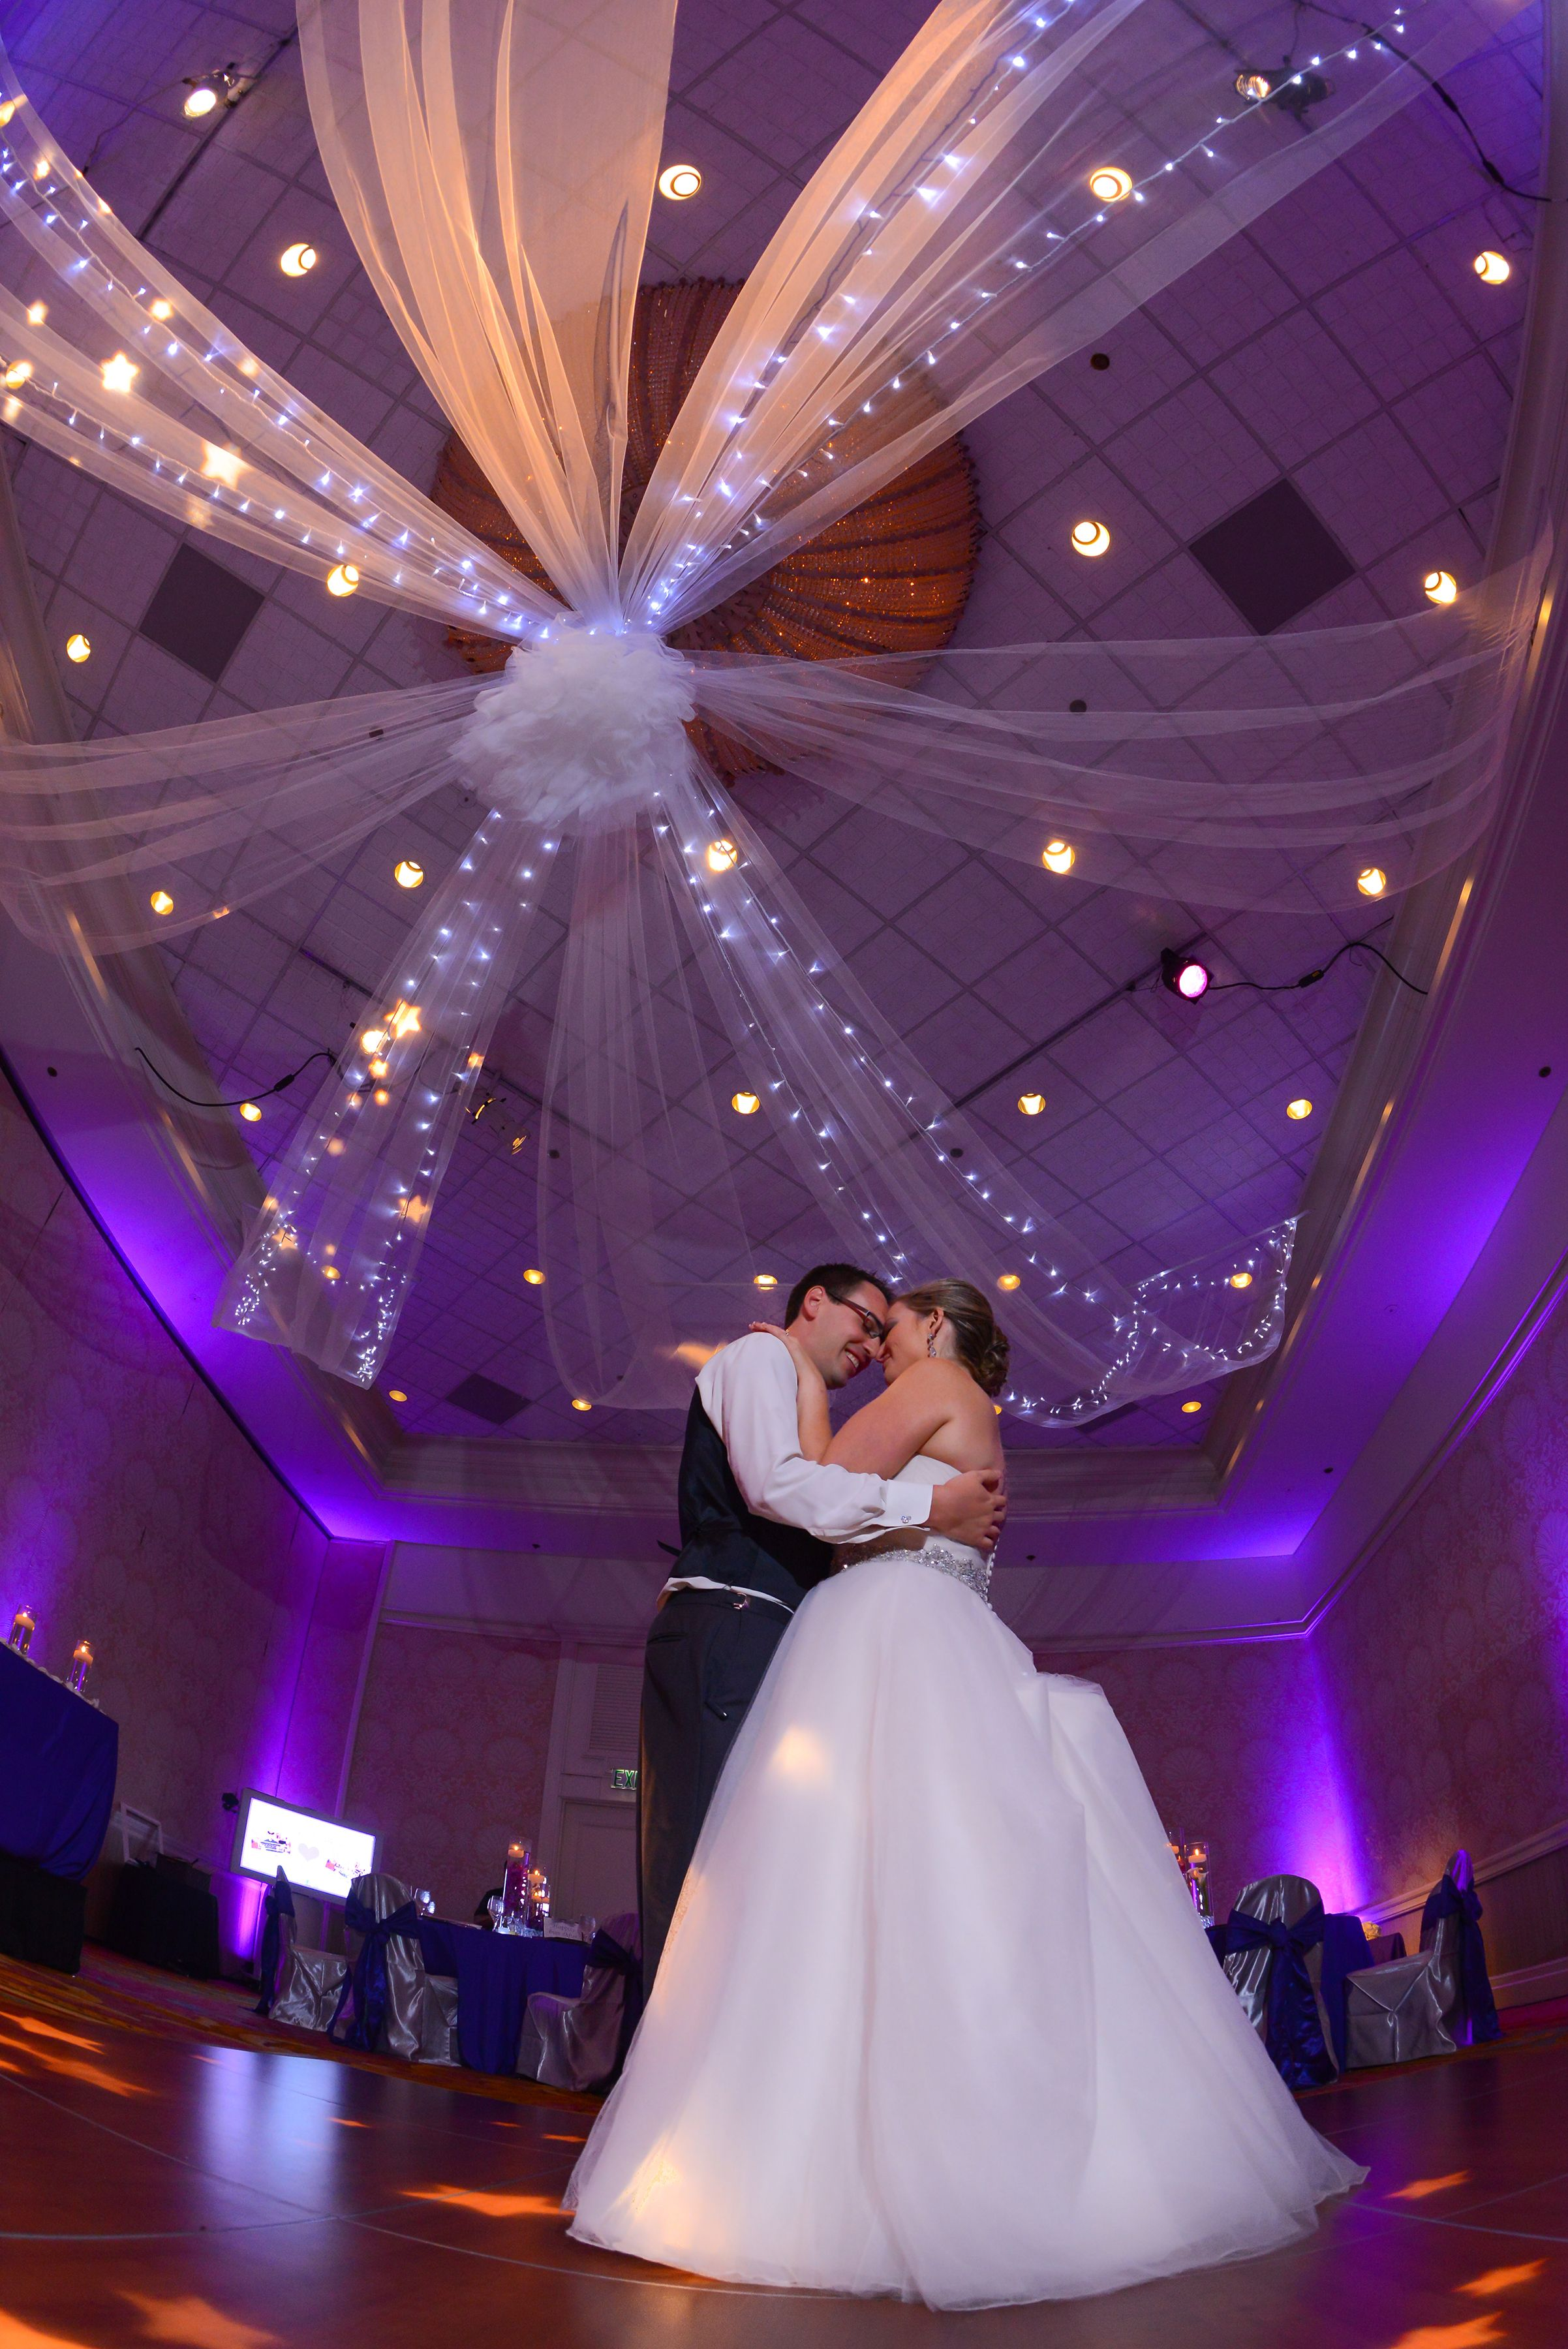 This couple's first dance at Disney's Grand Floridian Resort is a moment they will never forget.실시간마종슬롯머신신용대출소액대출